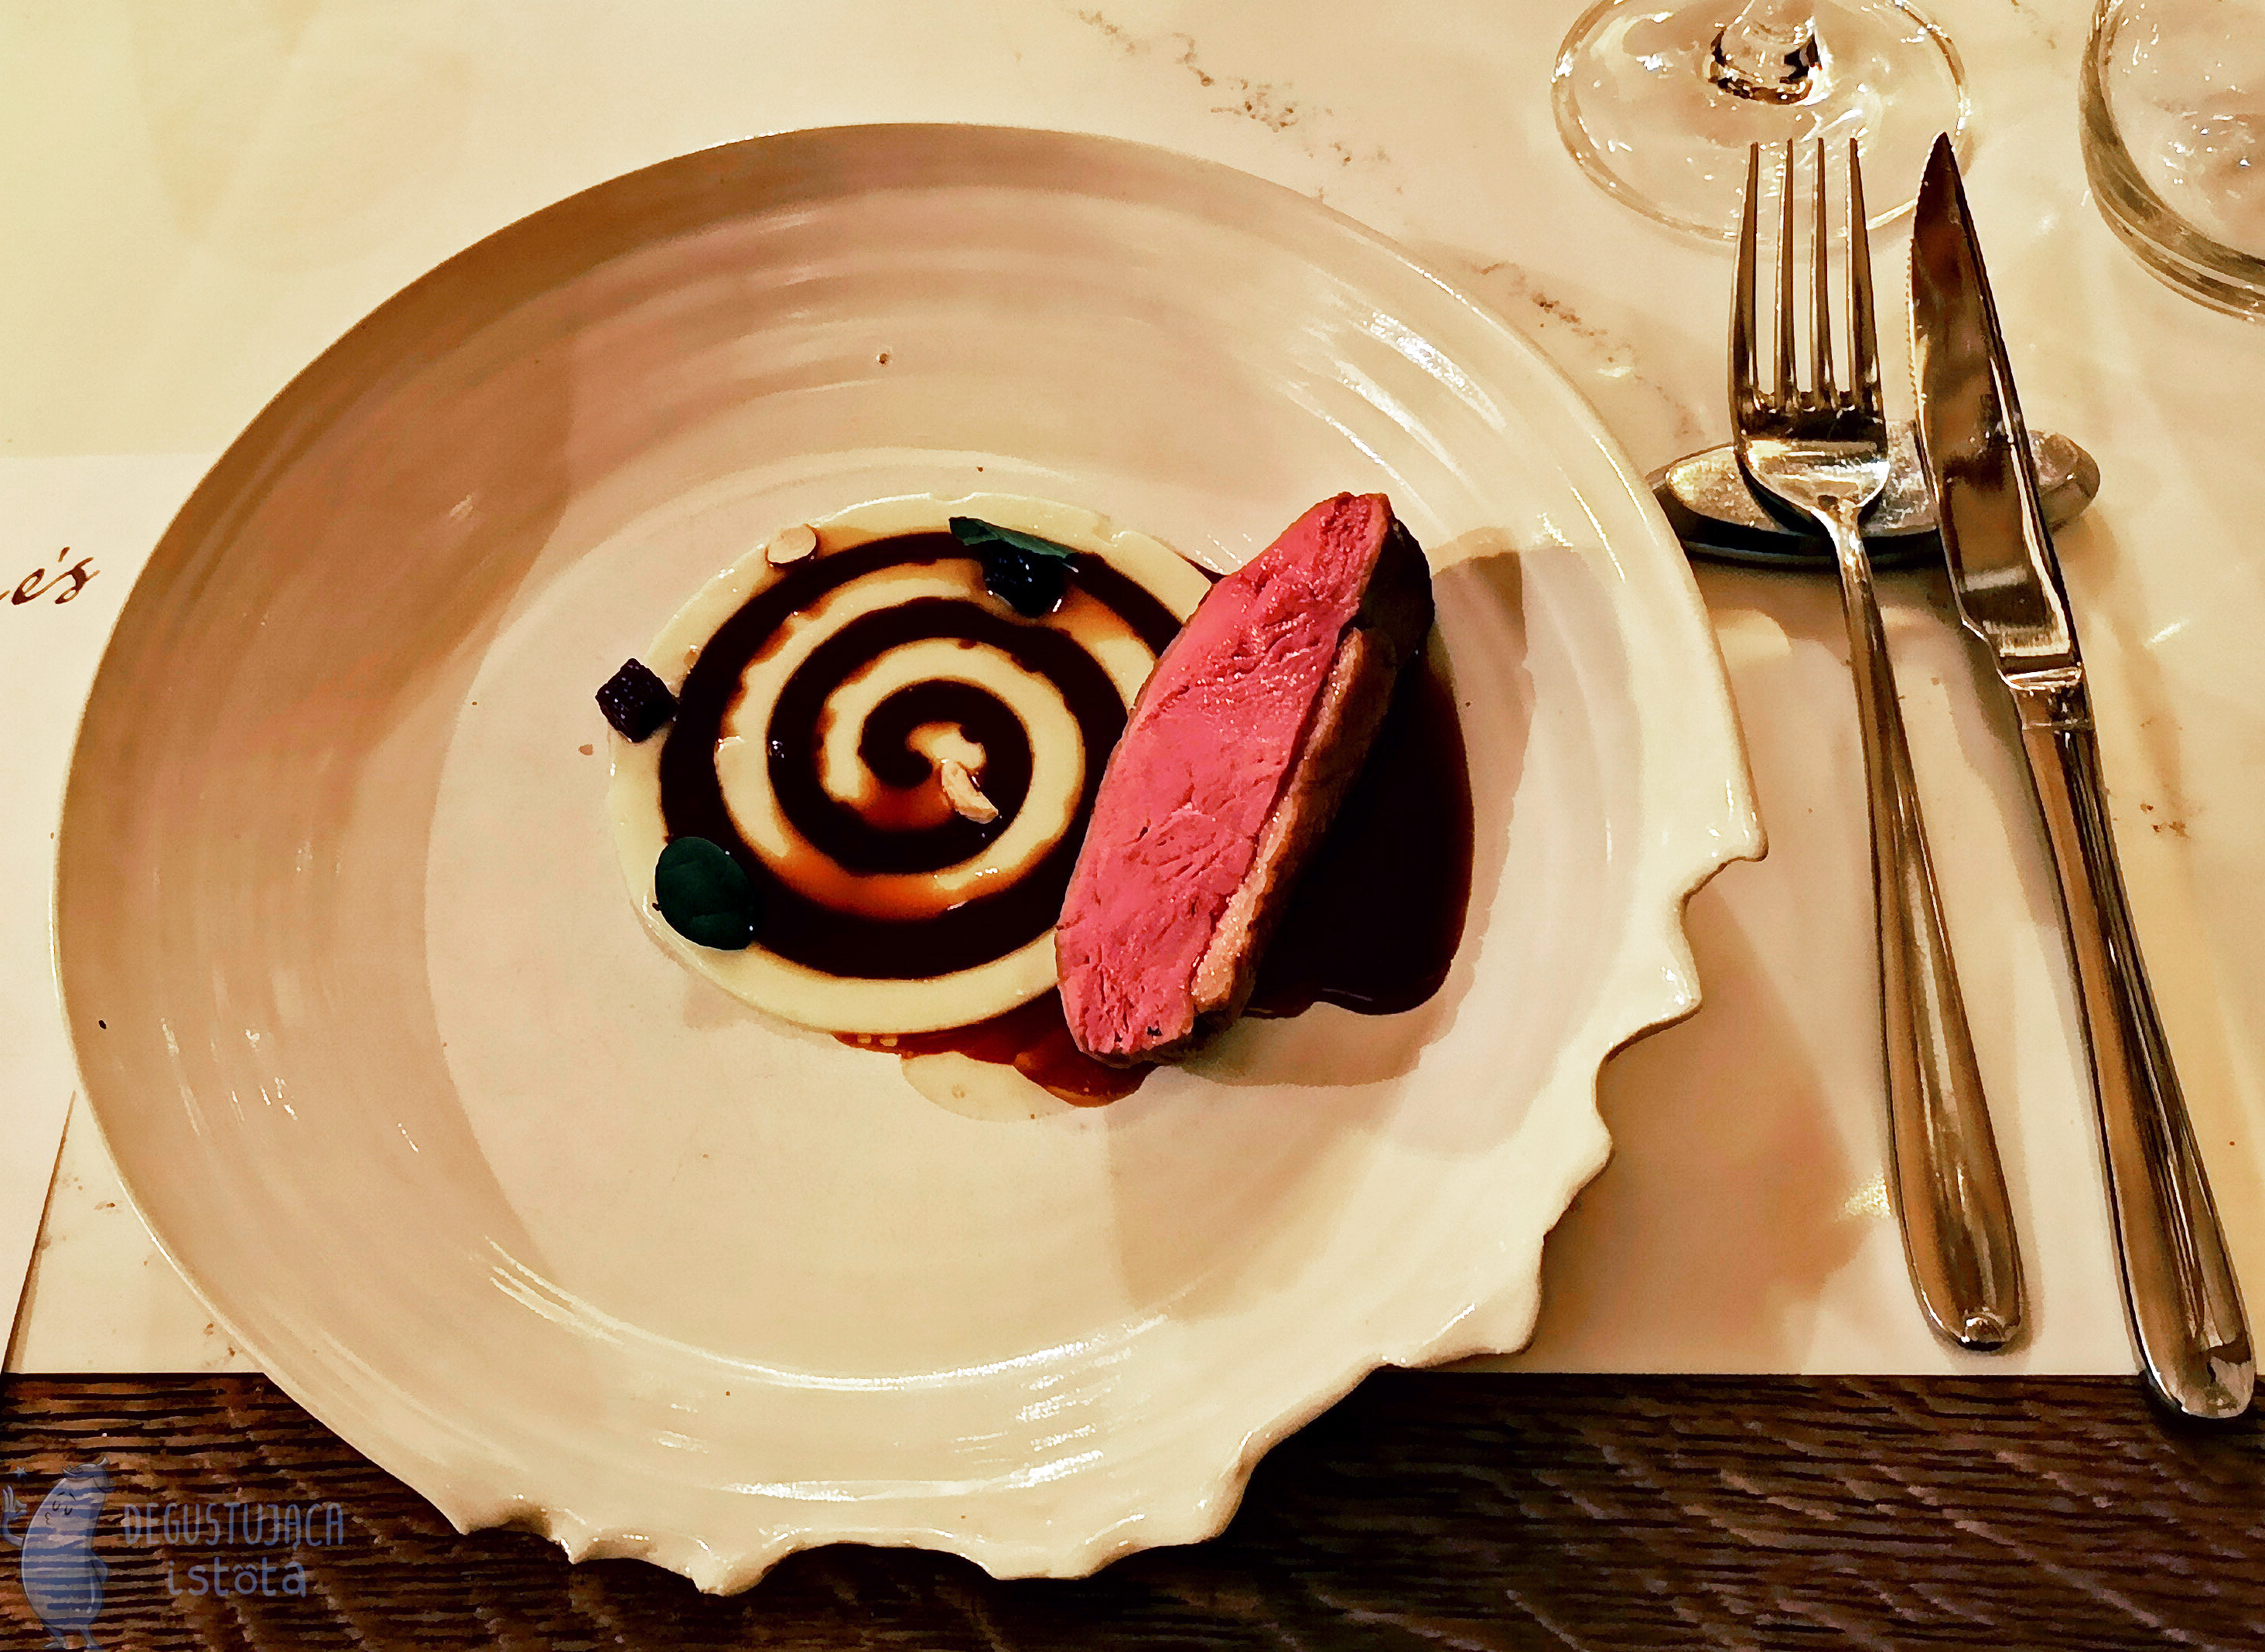 A snail stamp made of dark sauce on parsnip puree. Next to it is a duck fillet strap.